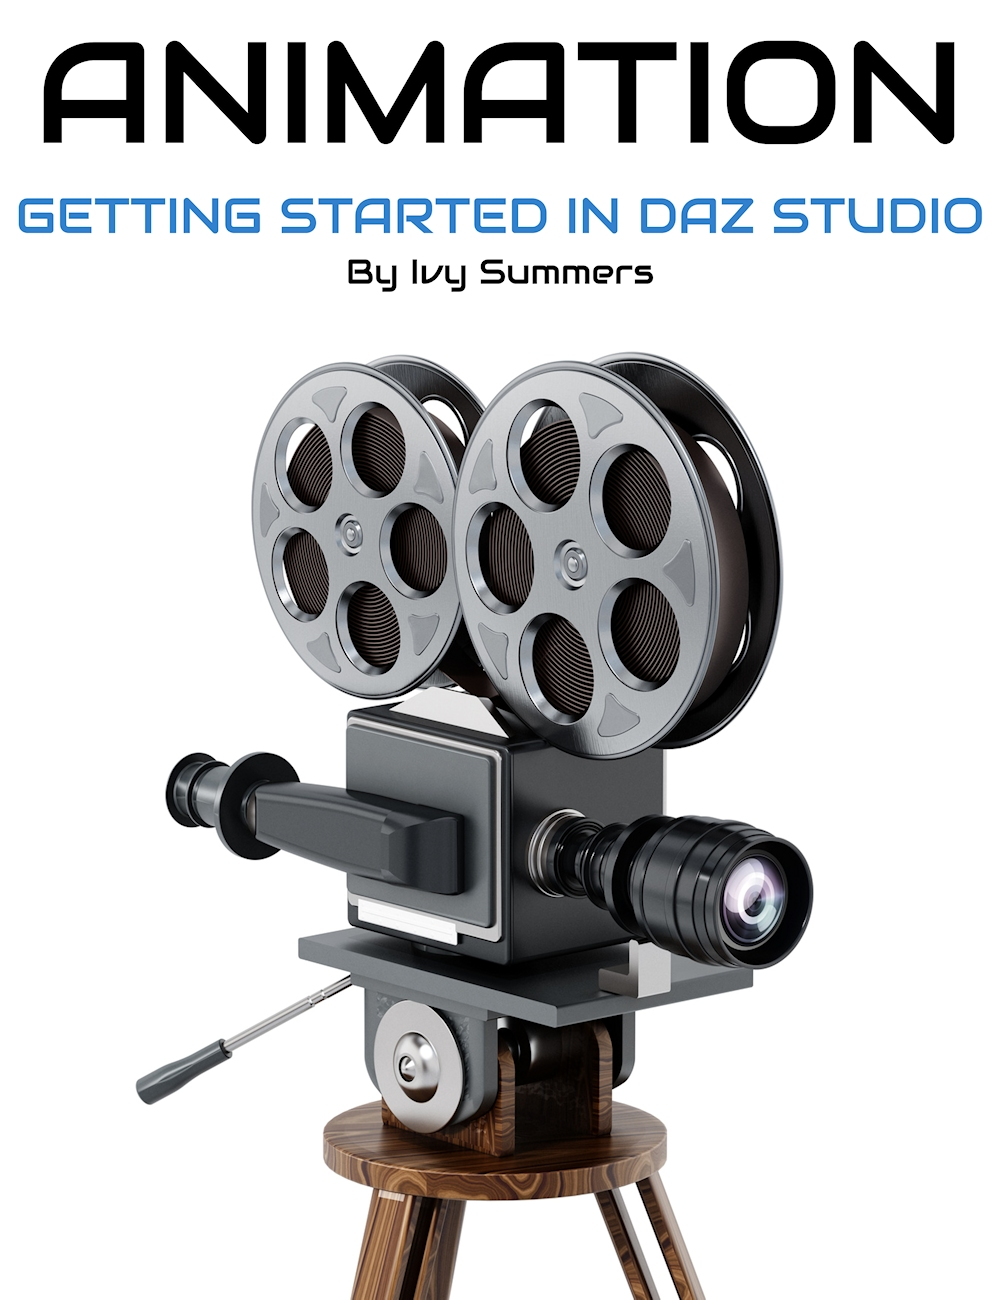 Daz Studio : Getting Started with Animation by: Digital Art Live, 3D Models by Daz 3D